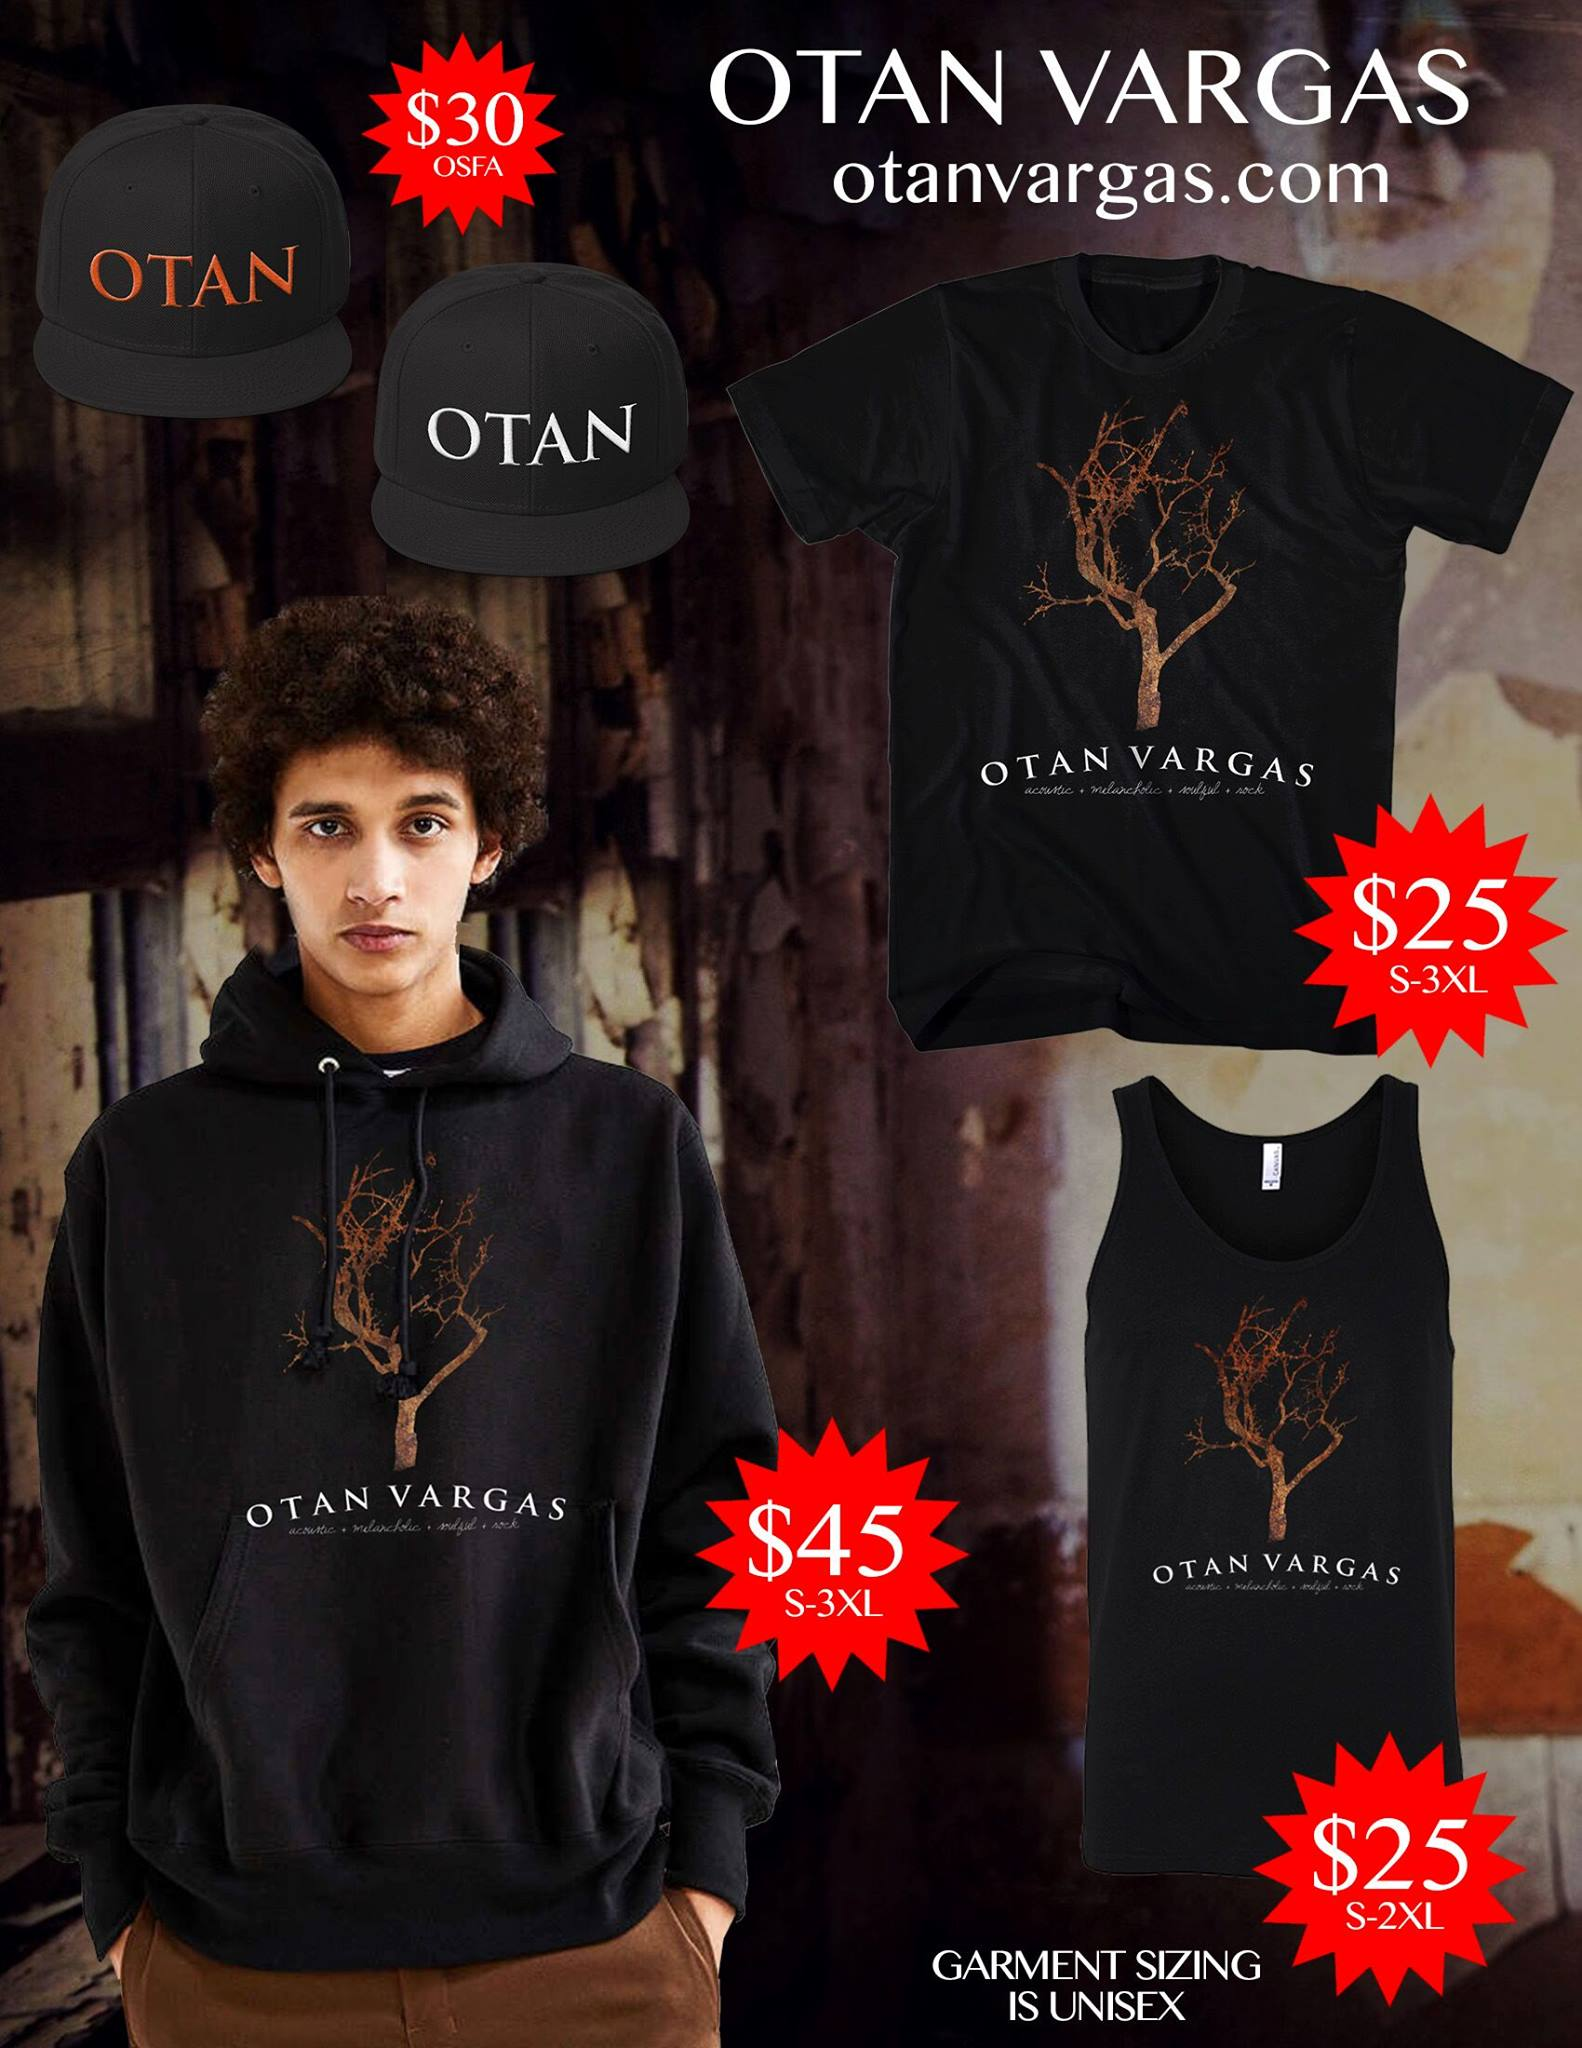 OTAN VARGAS MERCH - Hoodies, T-Shirts, Tank Tops and more.